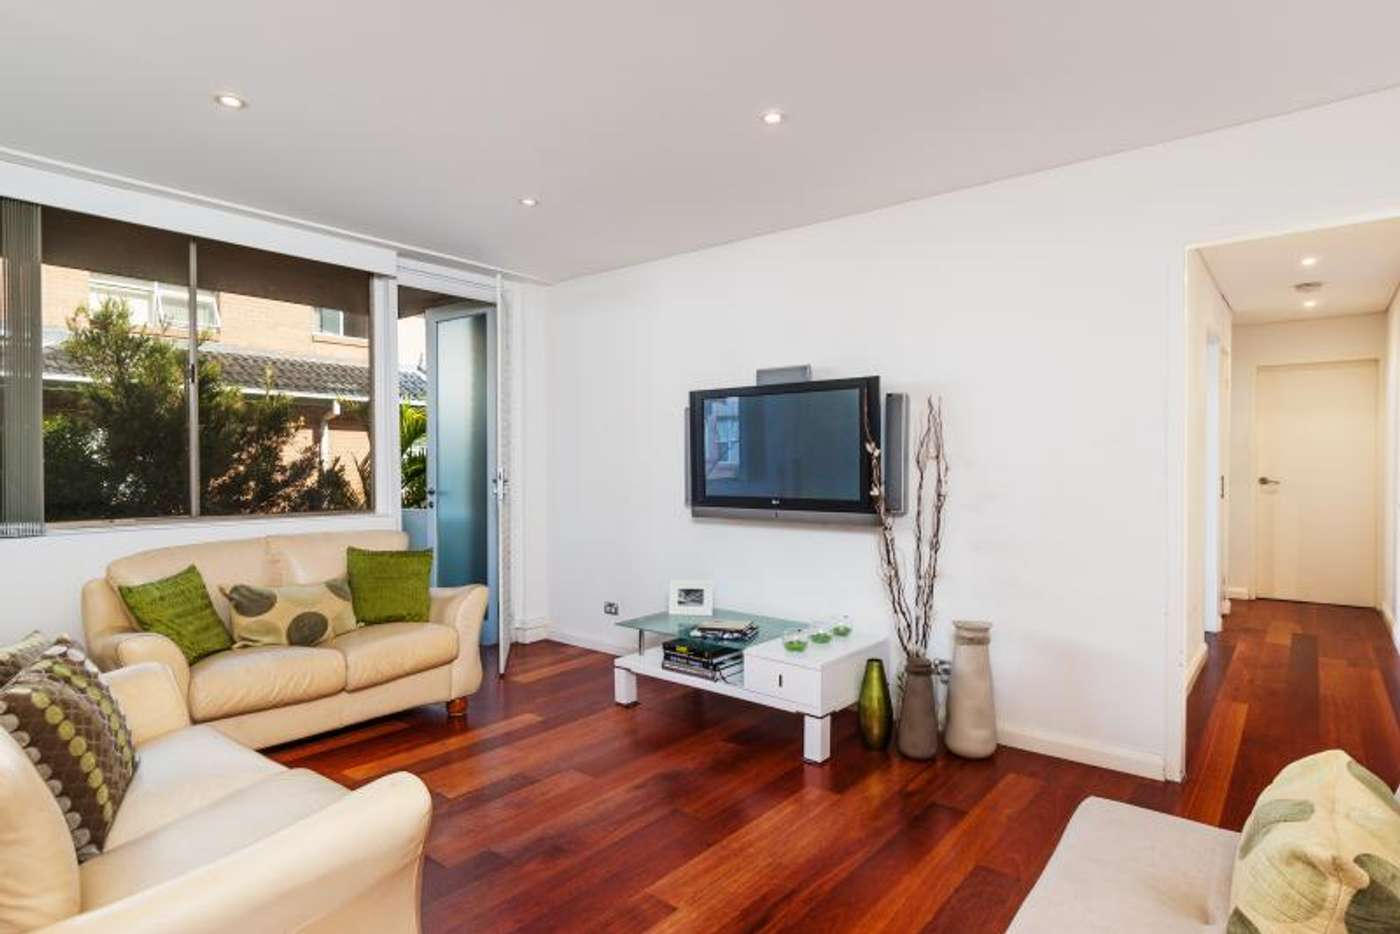 Main view of Homely apartment listing, 14/857 Anzac Parade, Maroubra NSW 2035